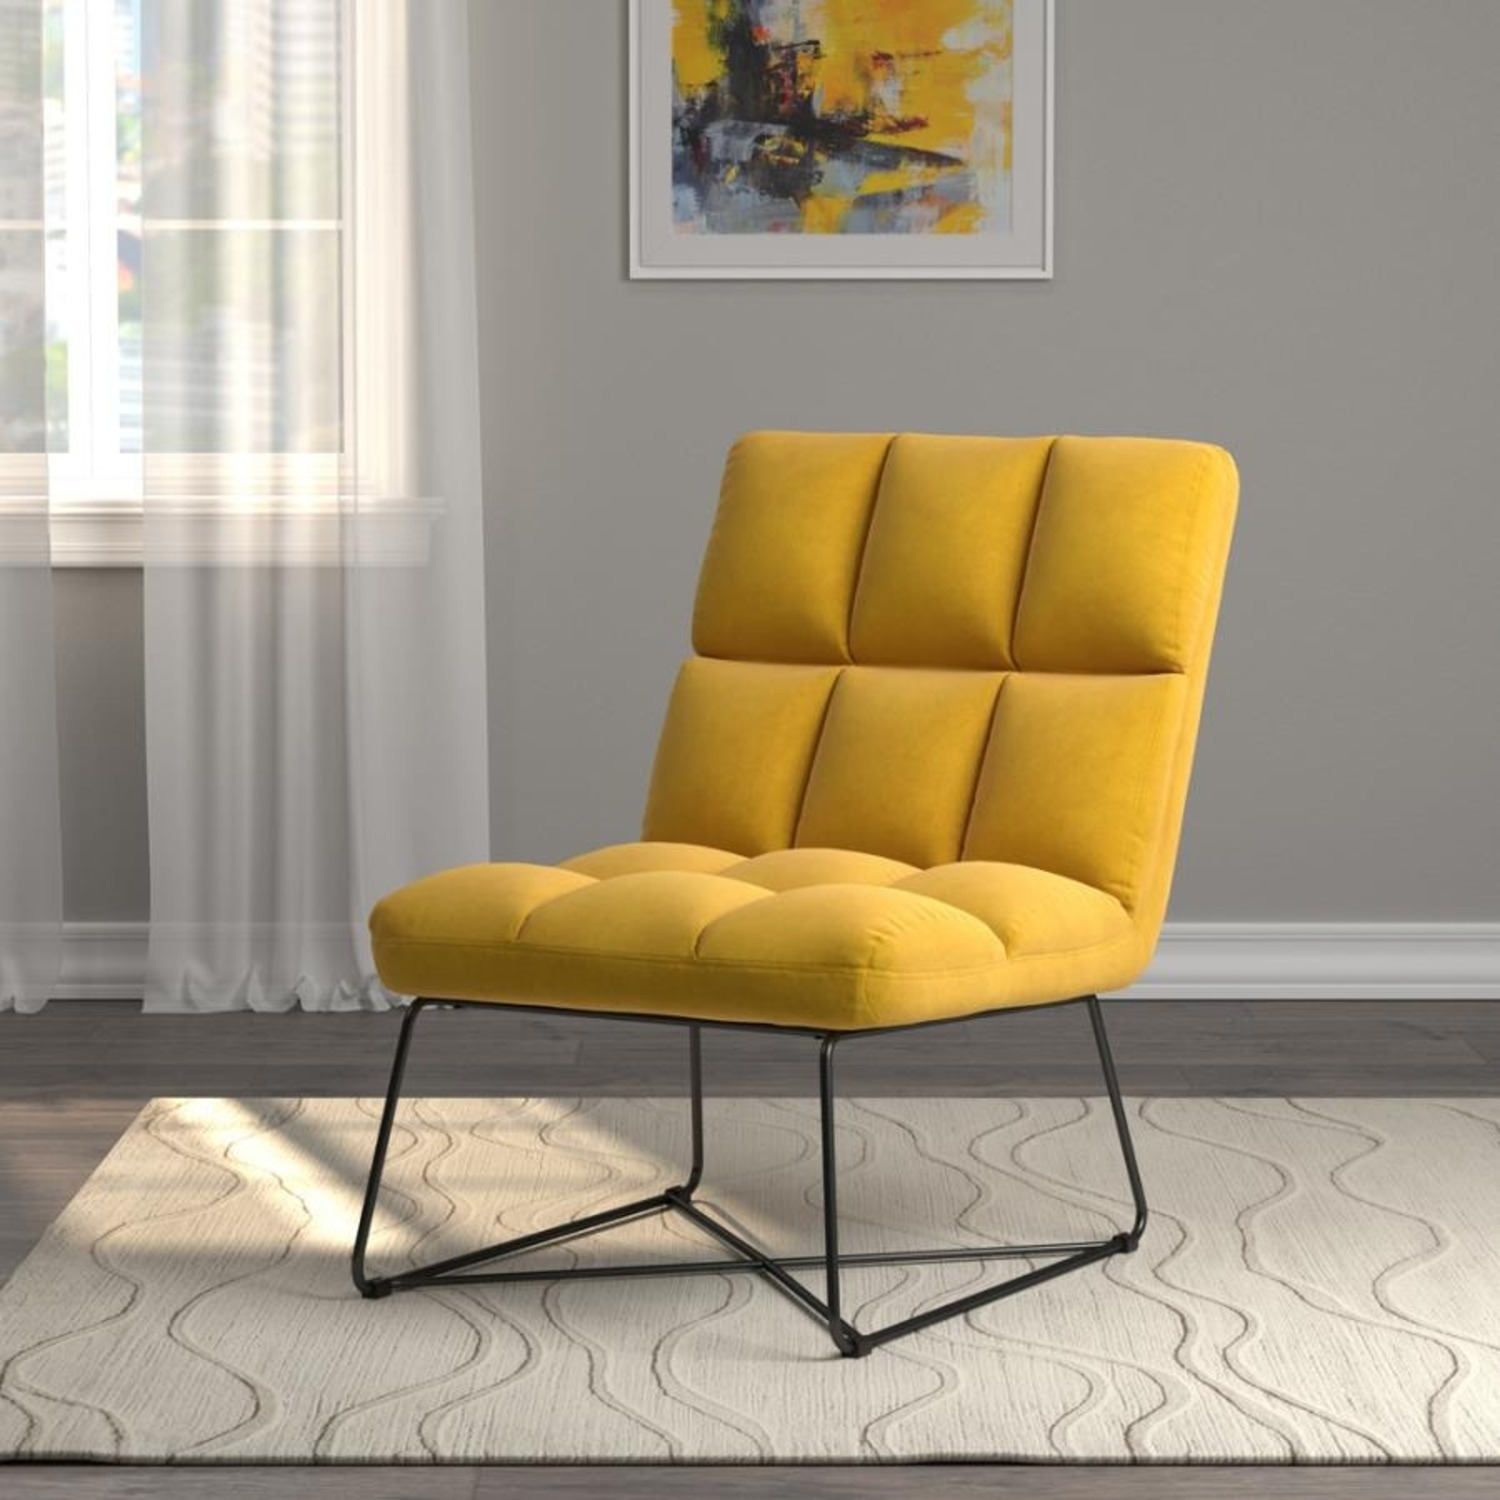 Accent Chair In Burnt Yellow Fabric & Grid Details - image-2